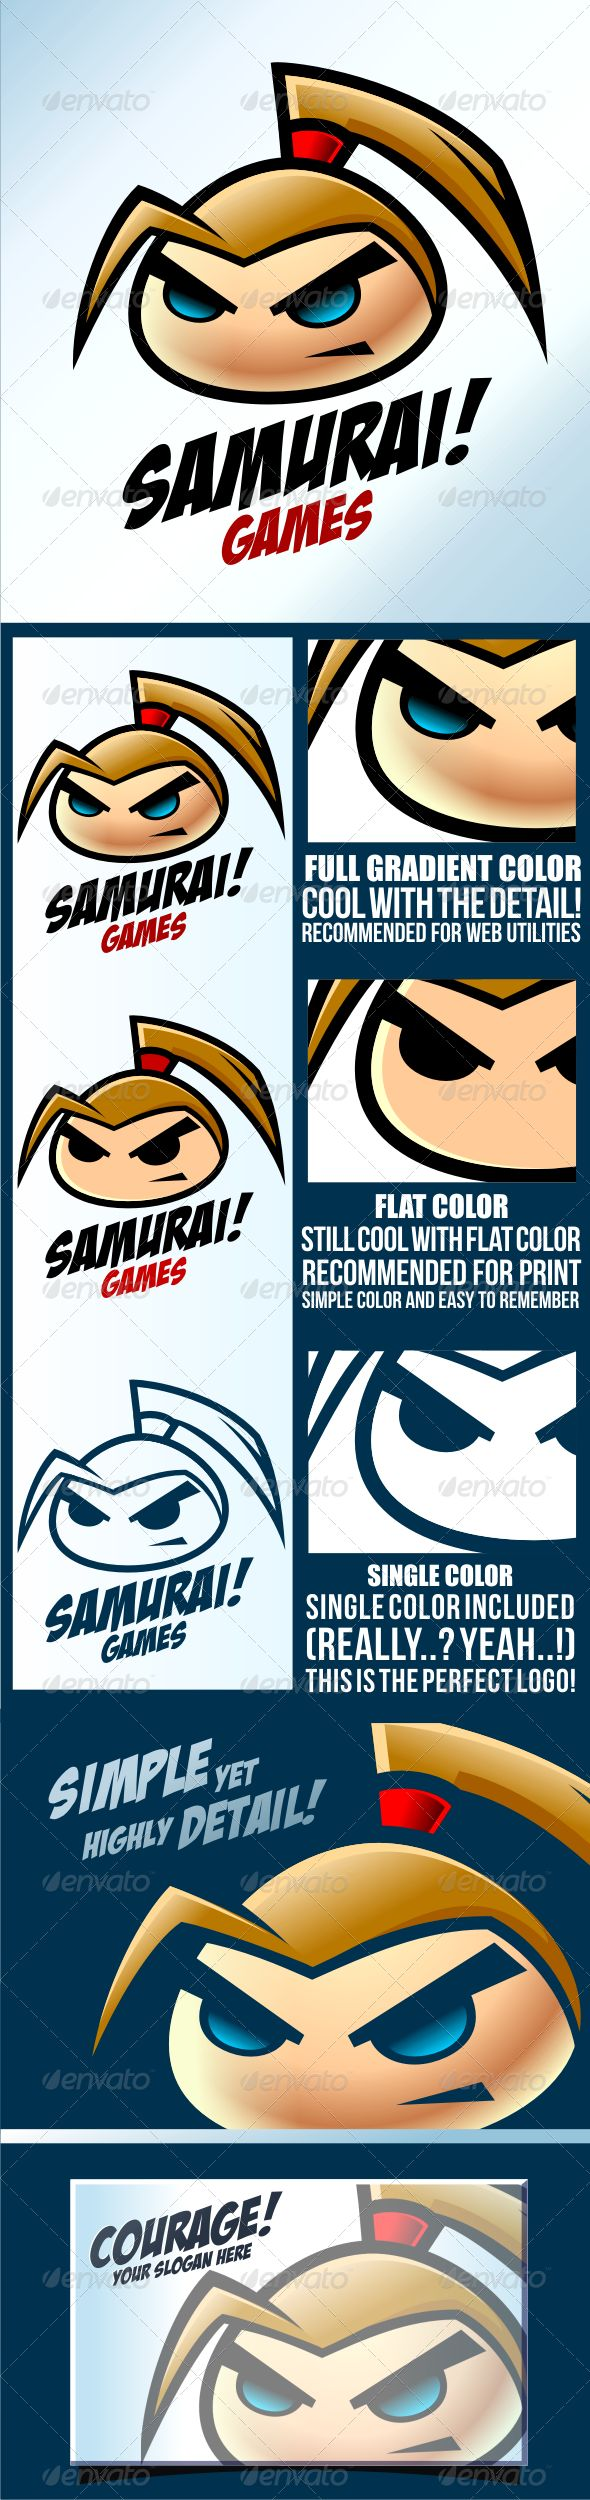 Samurai Game	 Logo Design Template Vector #logotype Download it here: http://graphicriver.net/item/samurai-game/3559312?s_rank=416?ref=nexion